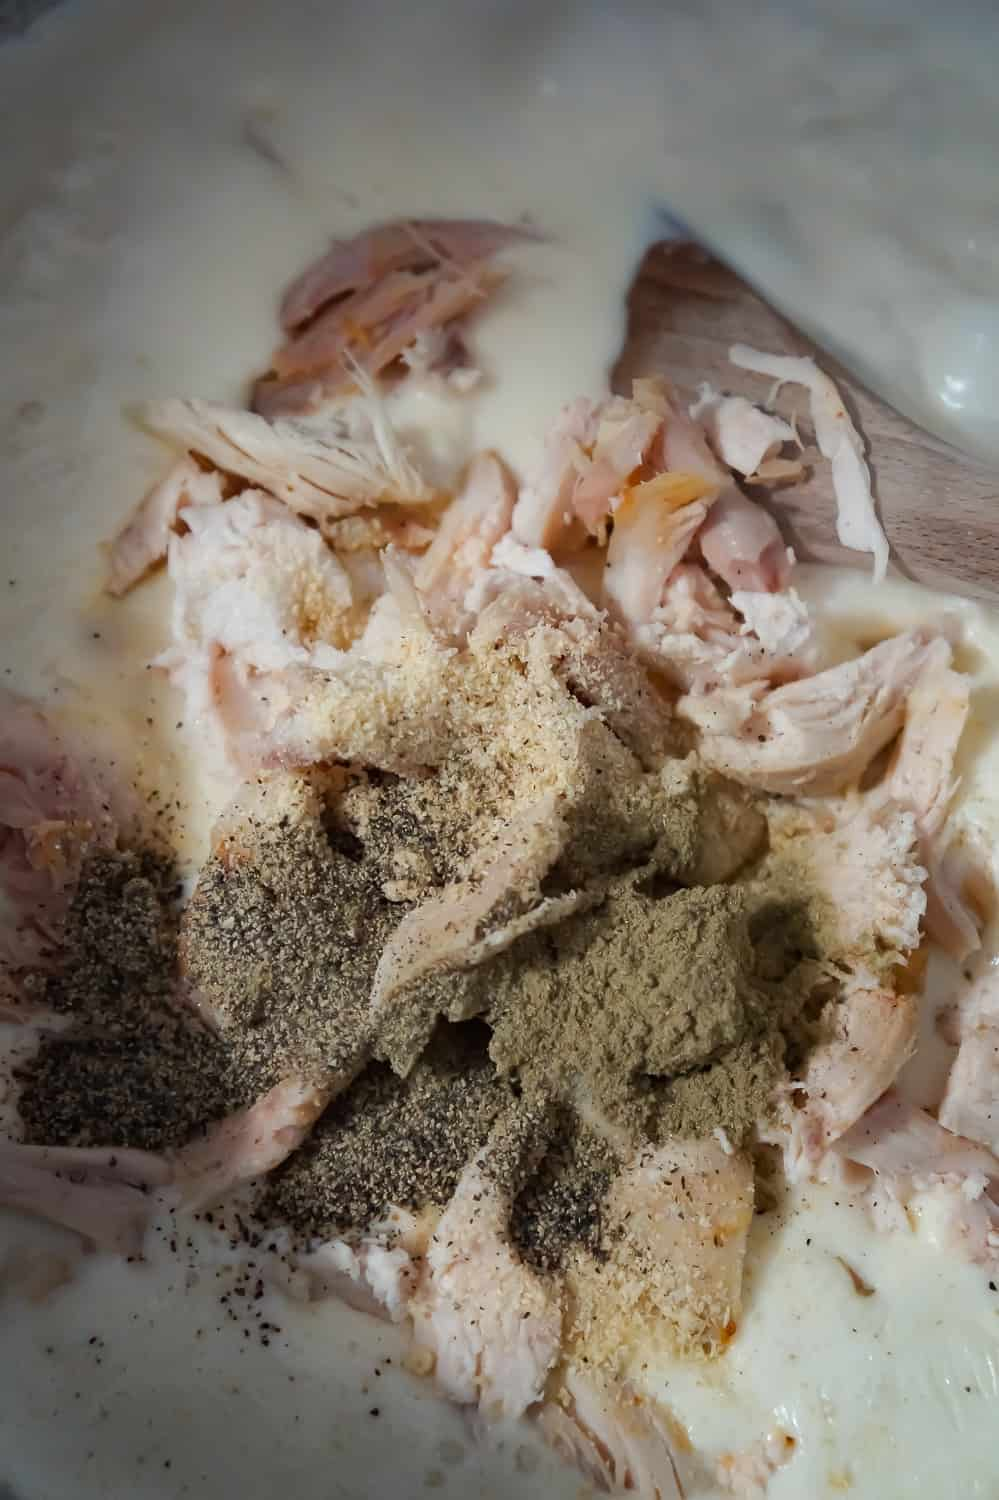 shredded chicken and spices added to a creamy sauce